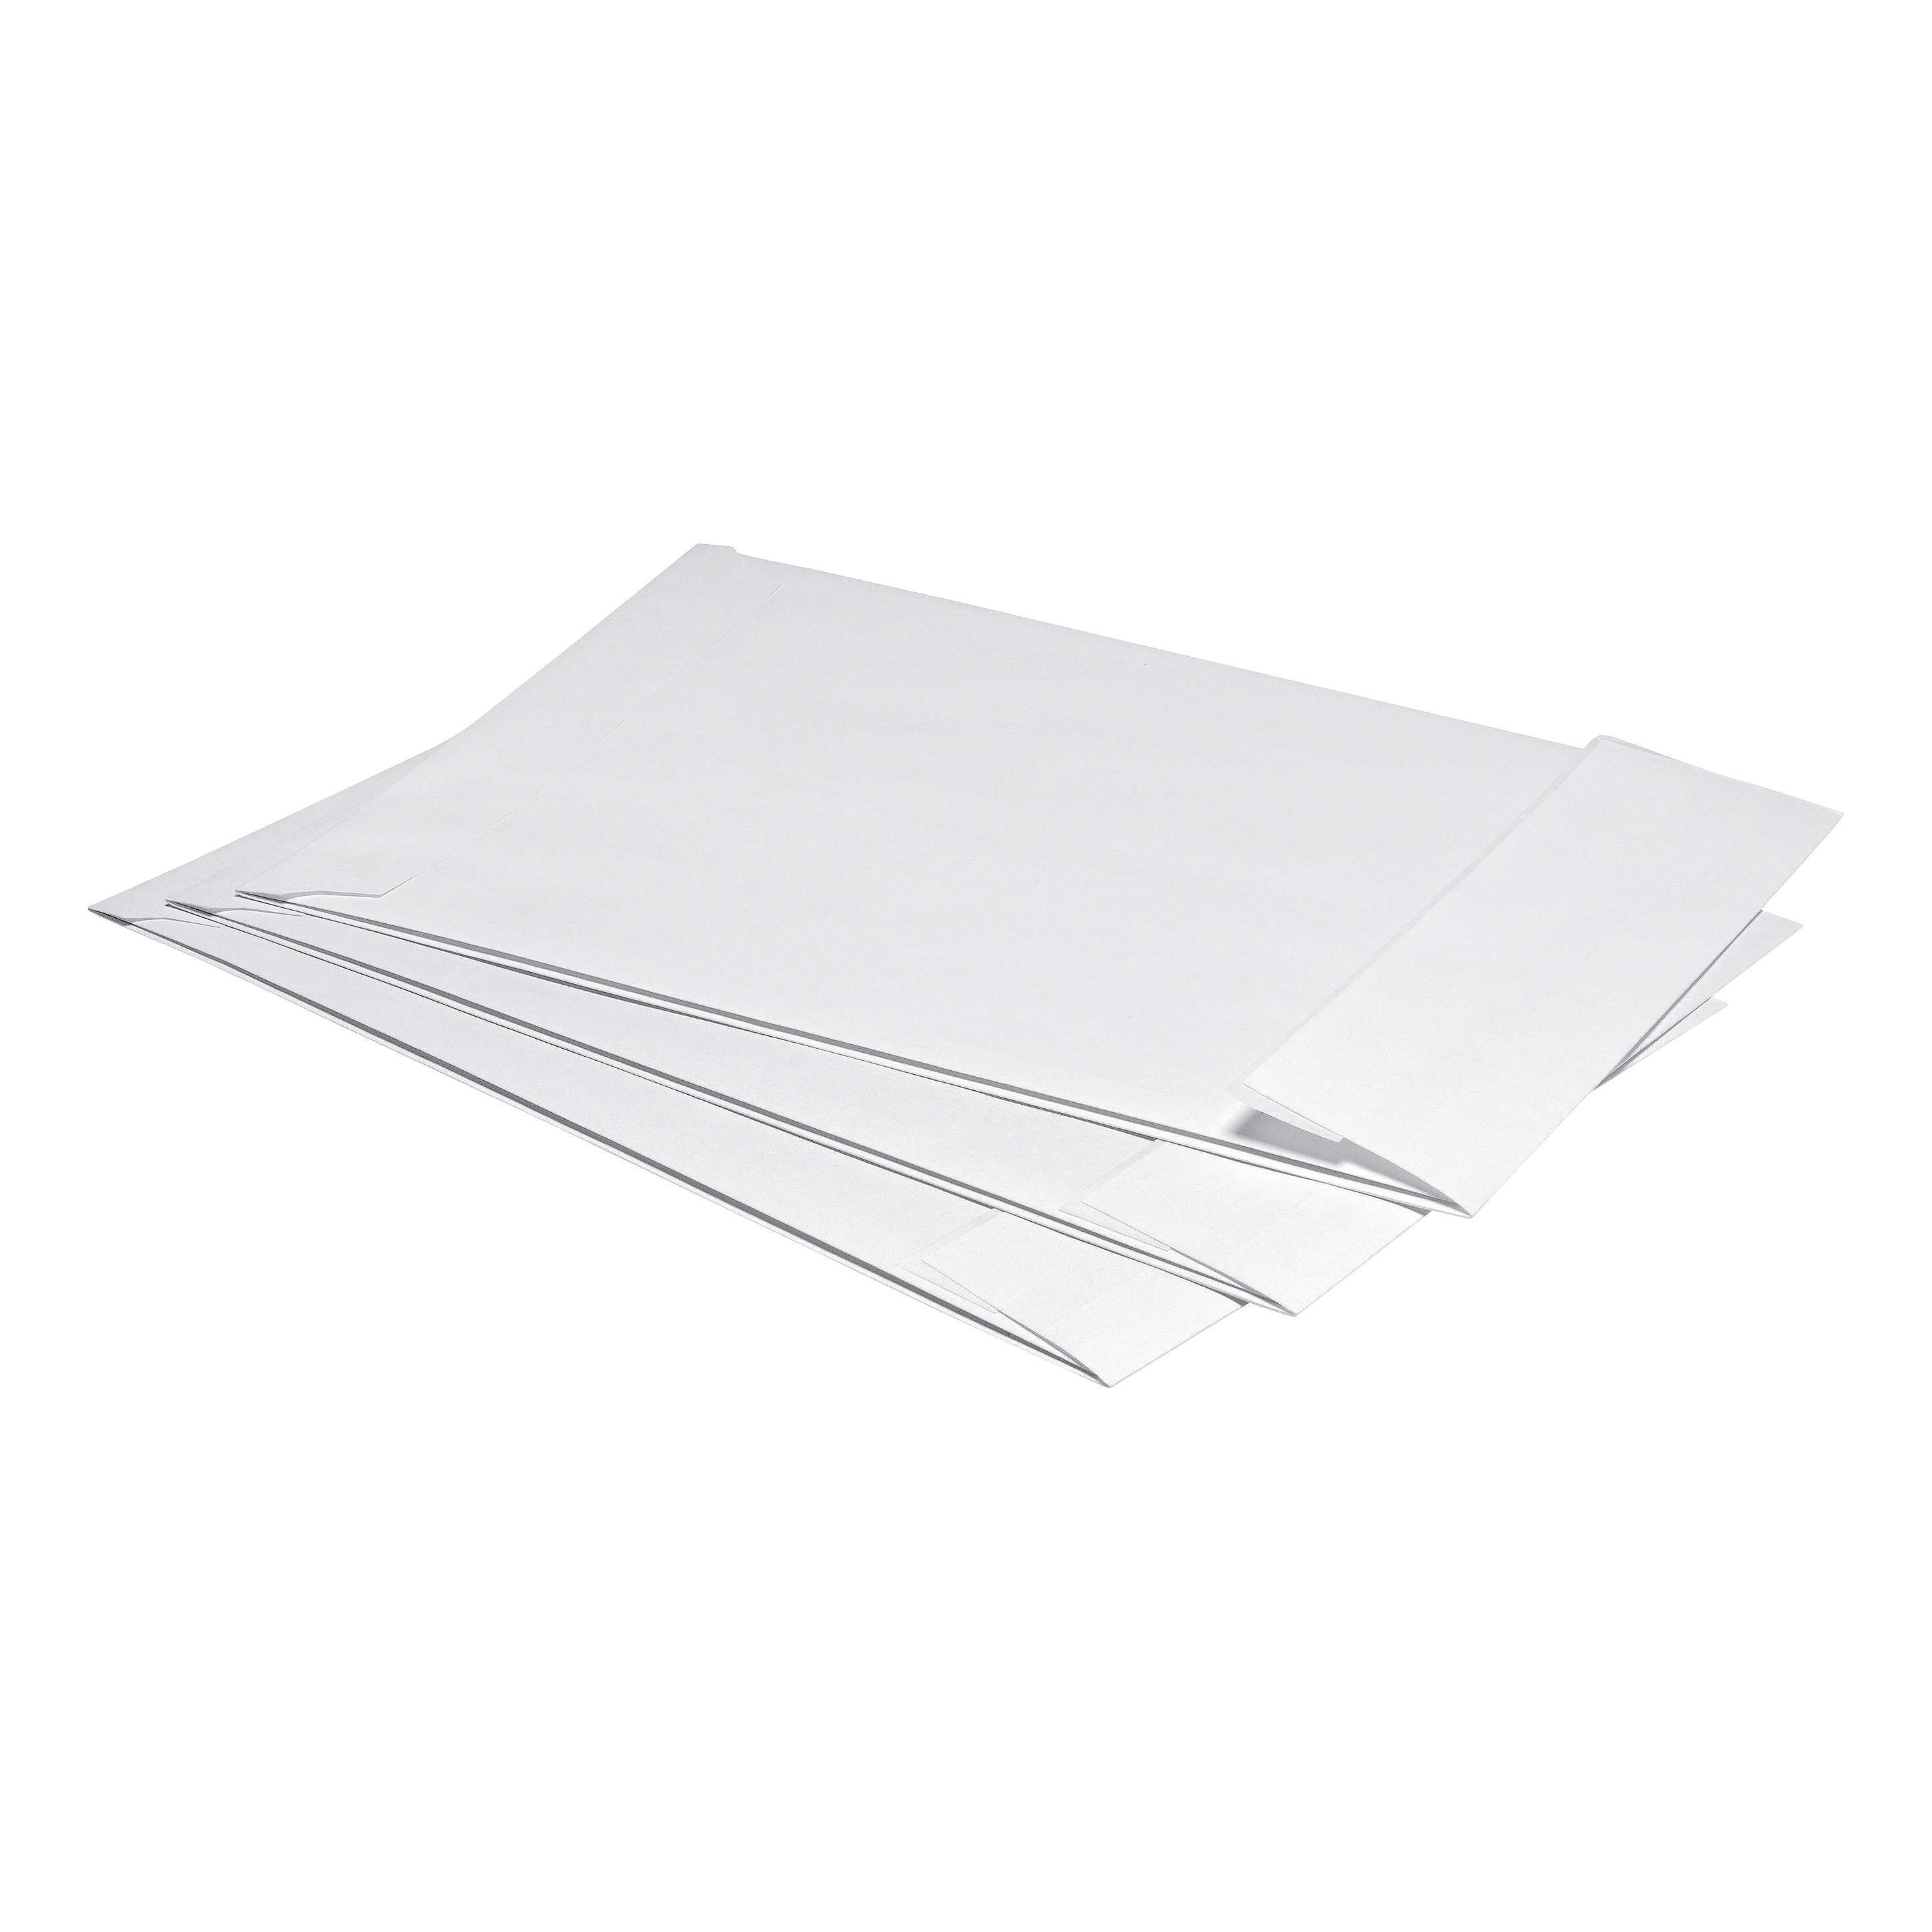 Gusset Envelopes 5 Star Office Envelopes C4 Gusset 25mm Peel and Seal 120gsm White Pack 125